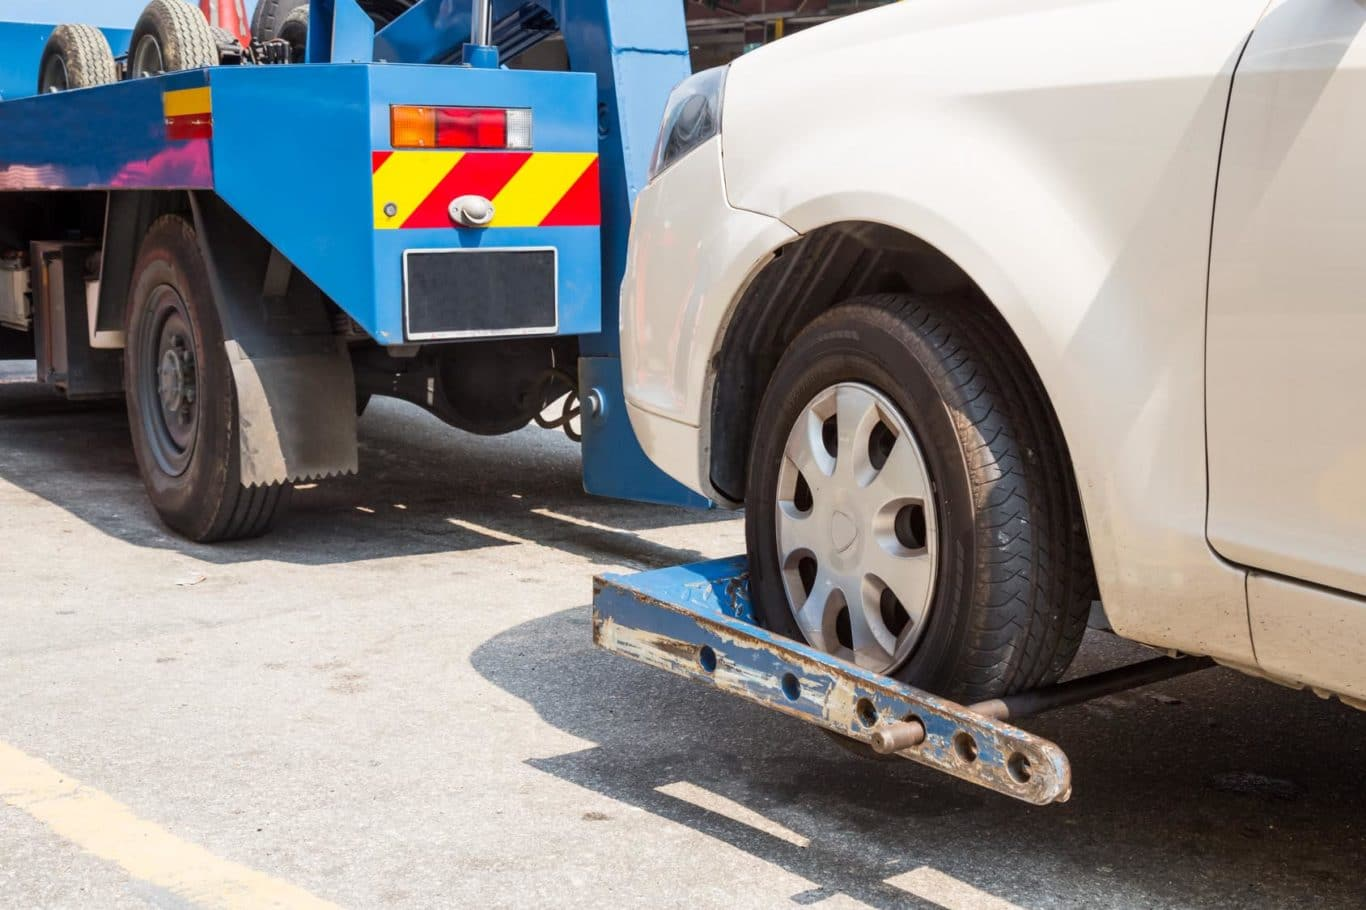 Julianstown expert Car Towing services